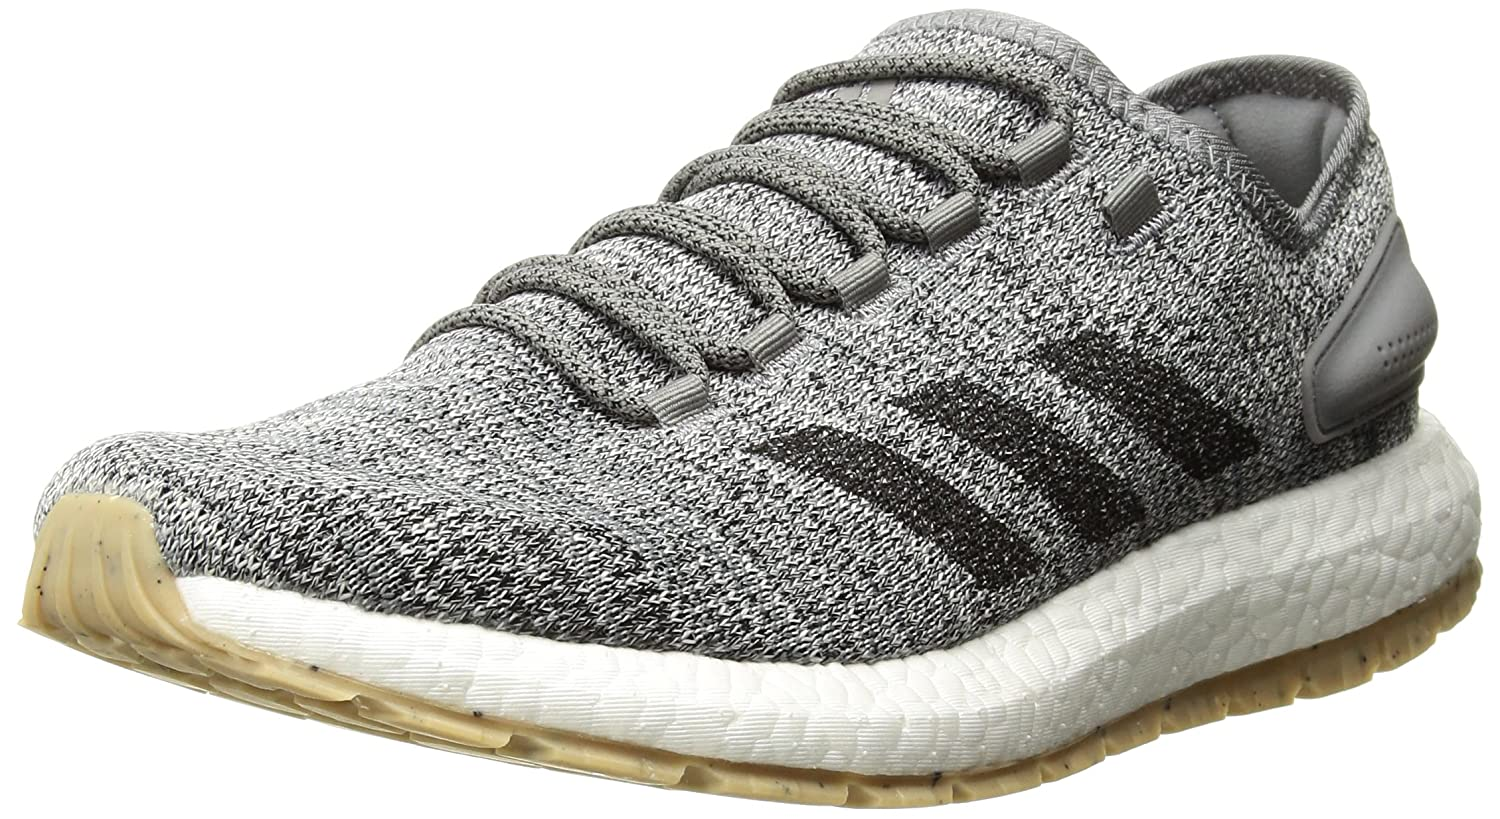 adidas Men's Pureboost ATR Running Shoe B01MY0JR92 6 D(M) US|White/Black/Grey Three